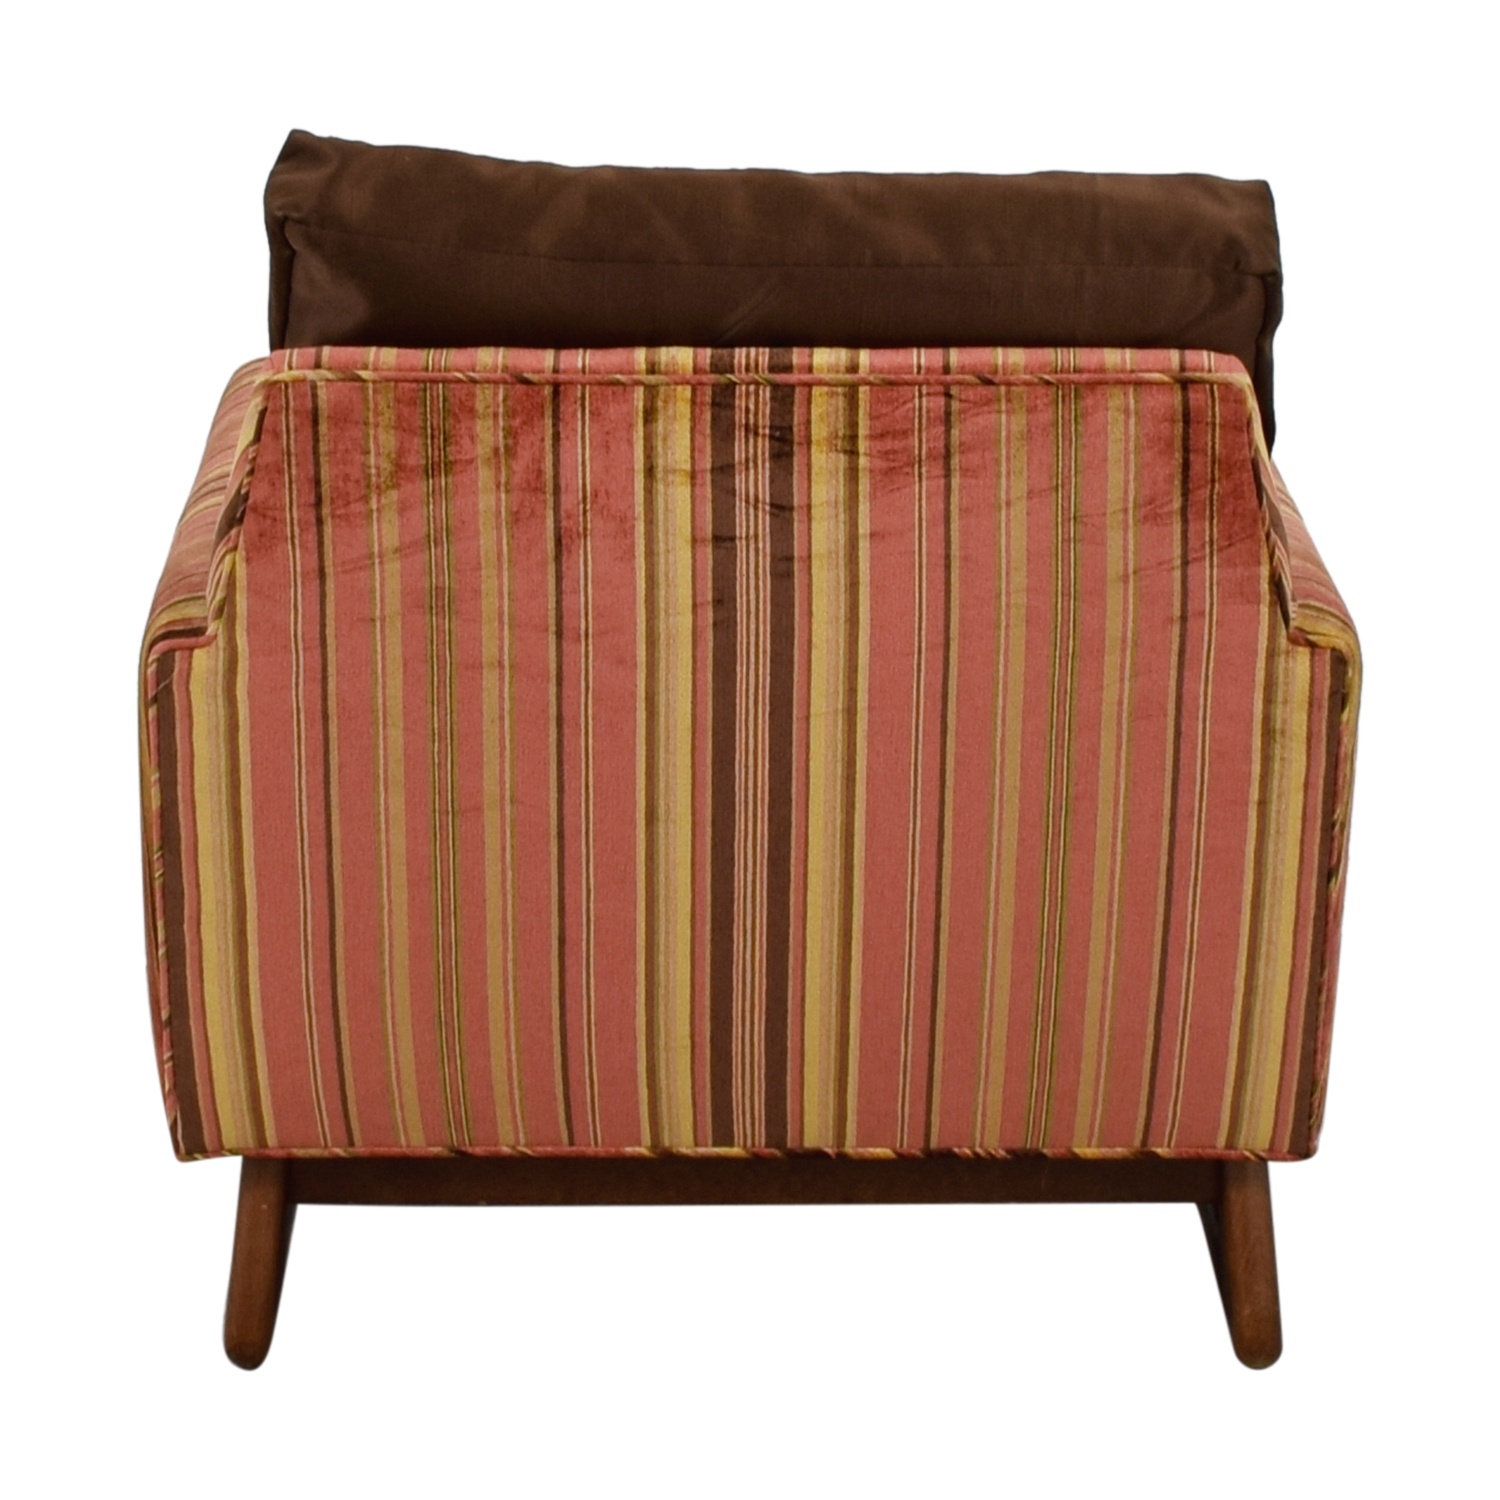 Amazing 89 Off Adrian Pearsall Adrian Pearsall Red And Yellow Striped Accent Chair Chairs Short Links Chair Design For Home Short Linksinfo